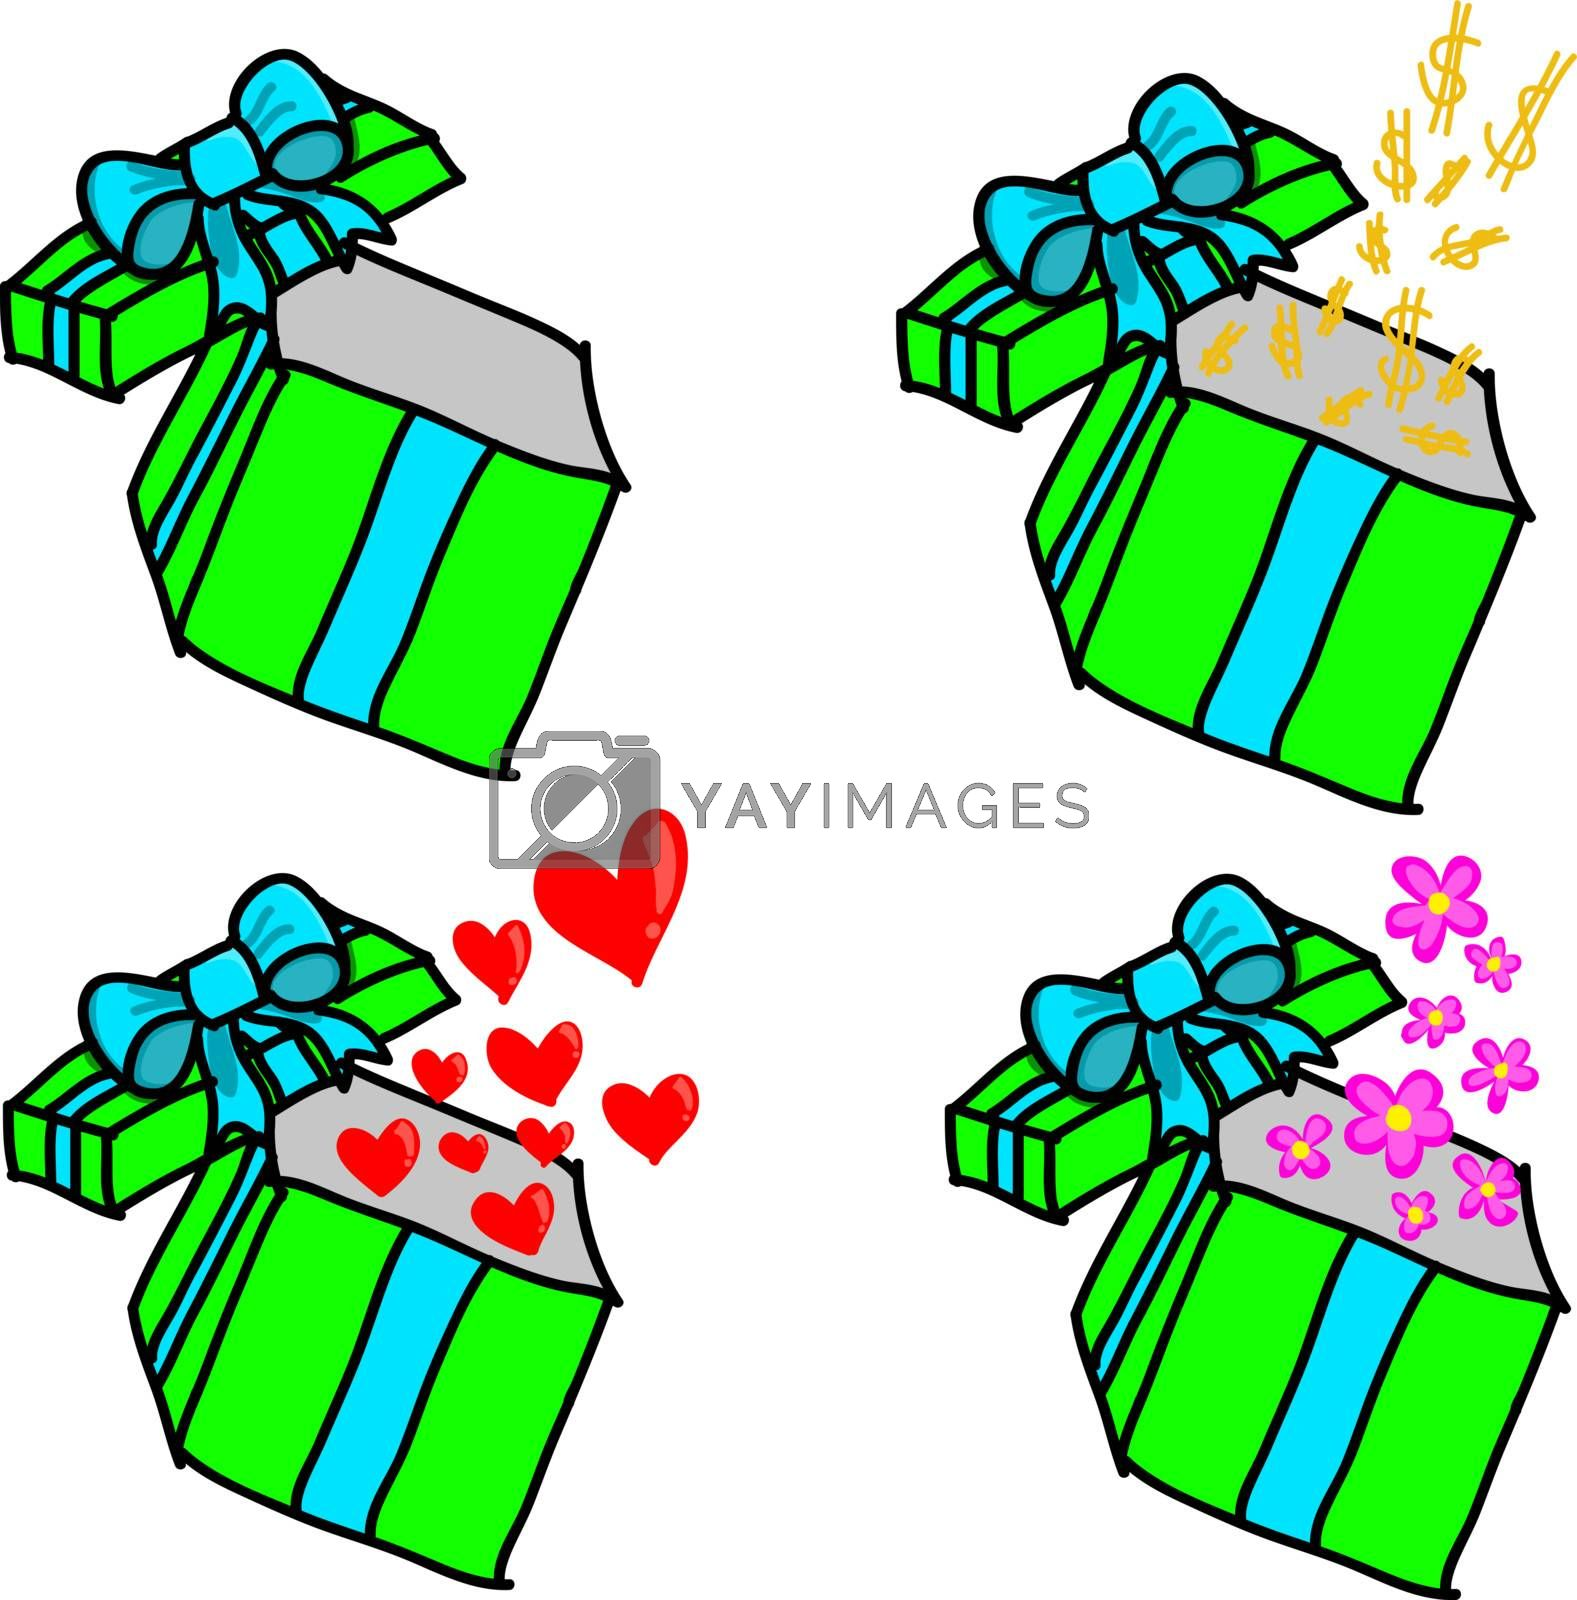 Opened colorful gift box with dollar, hearts and flowers on white background